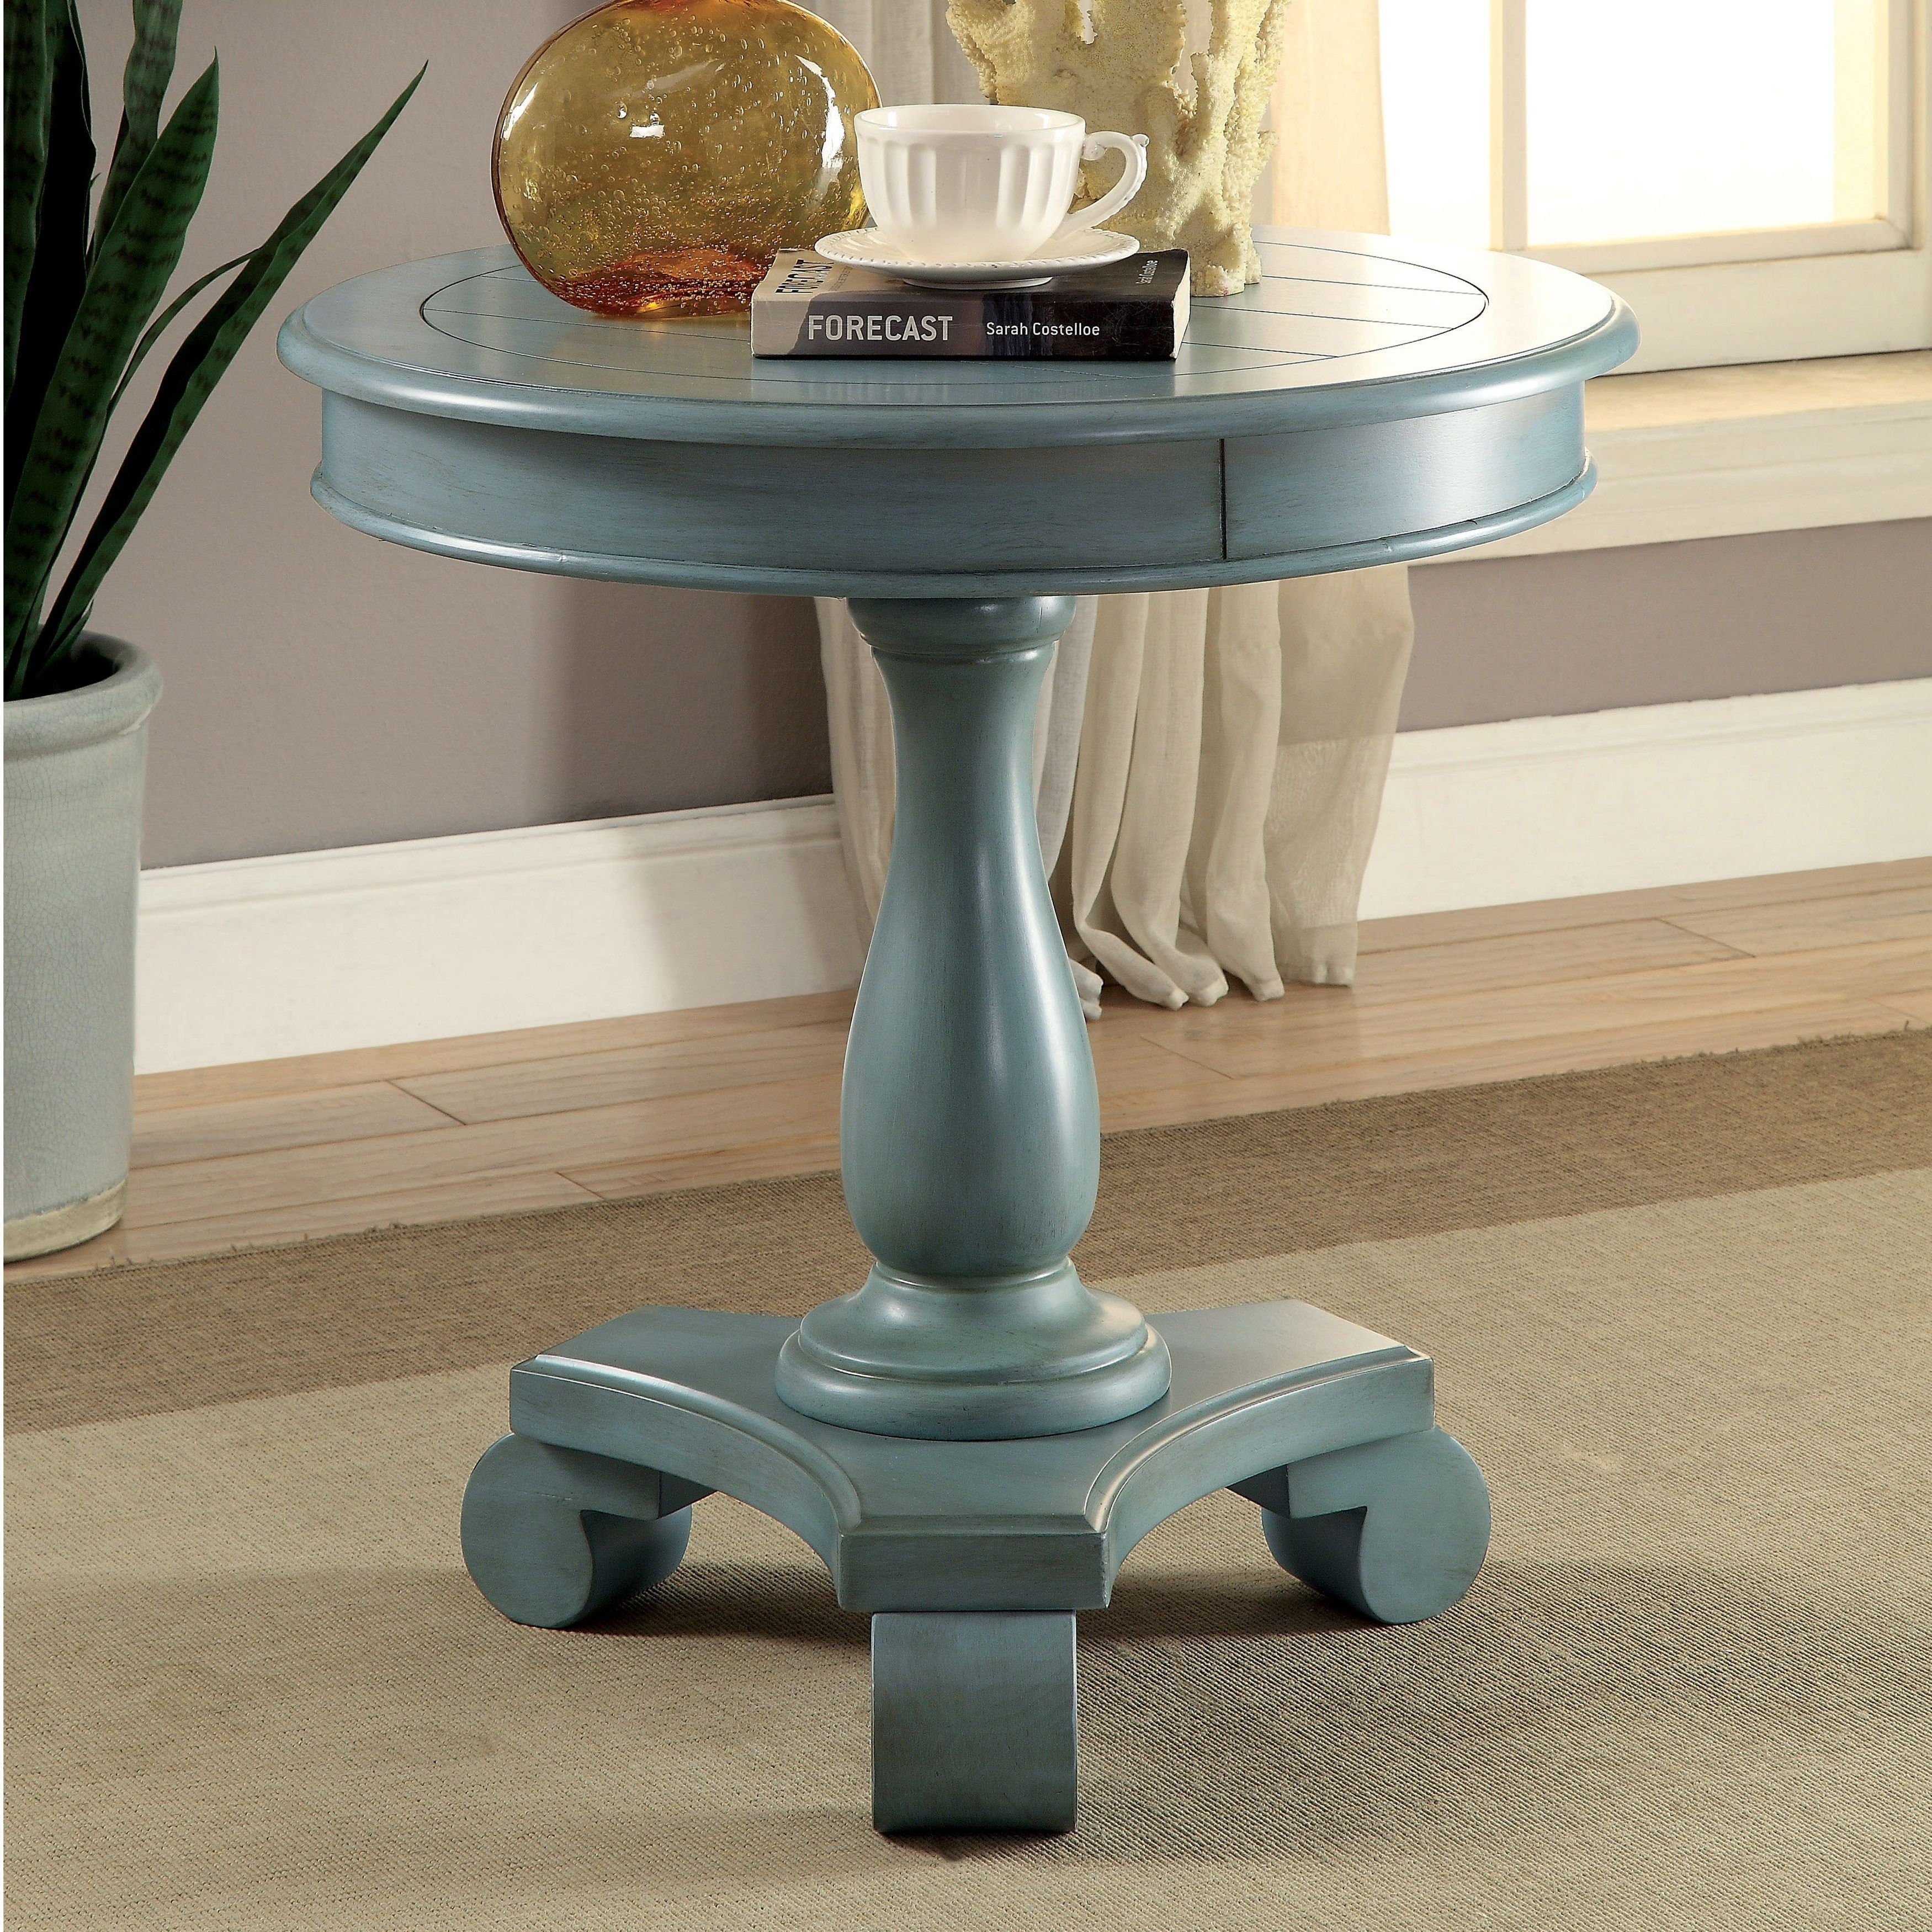 furniture america madelle traditional pedestal base round side antique blue accent table teal industrial couch west elm outdoor pine trestle childrens nic whangarei small plastic